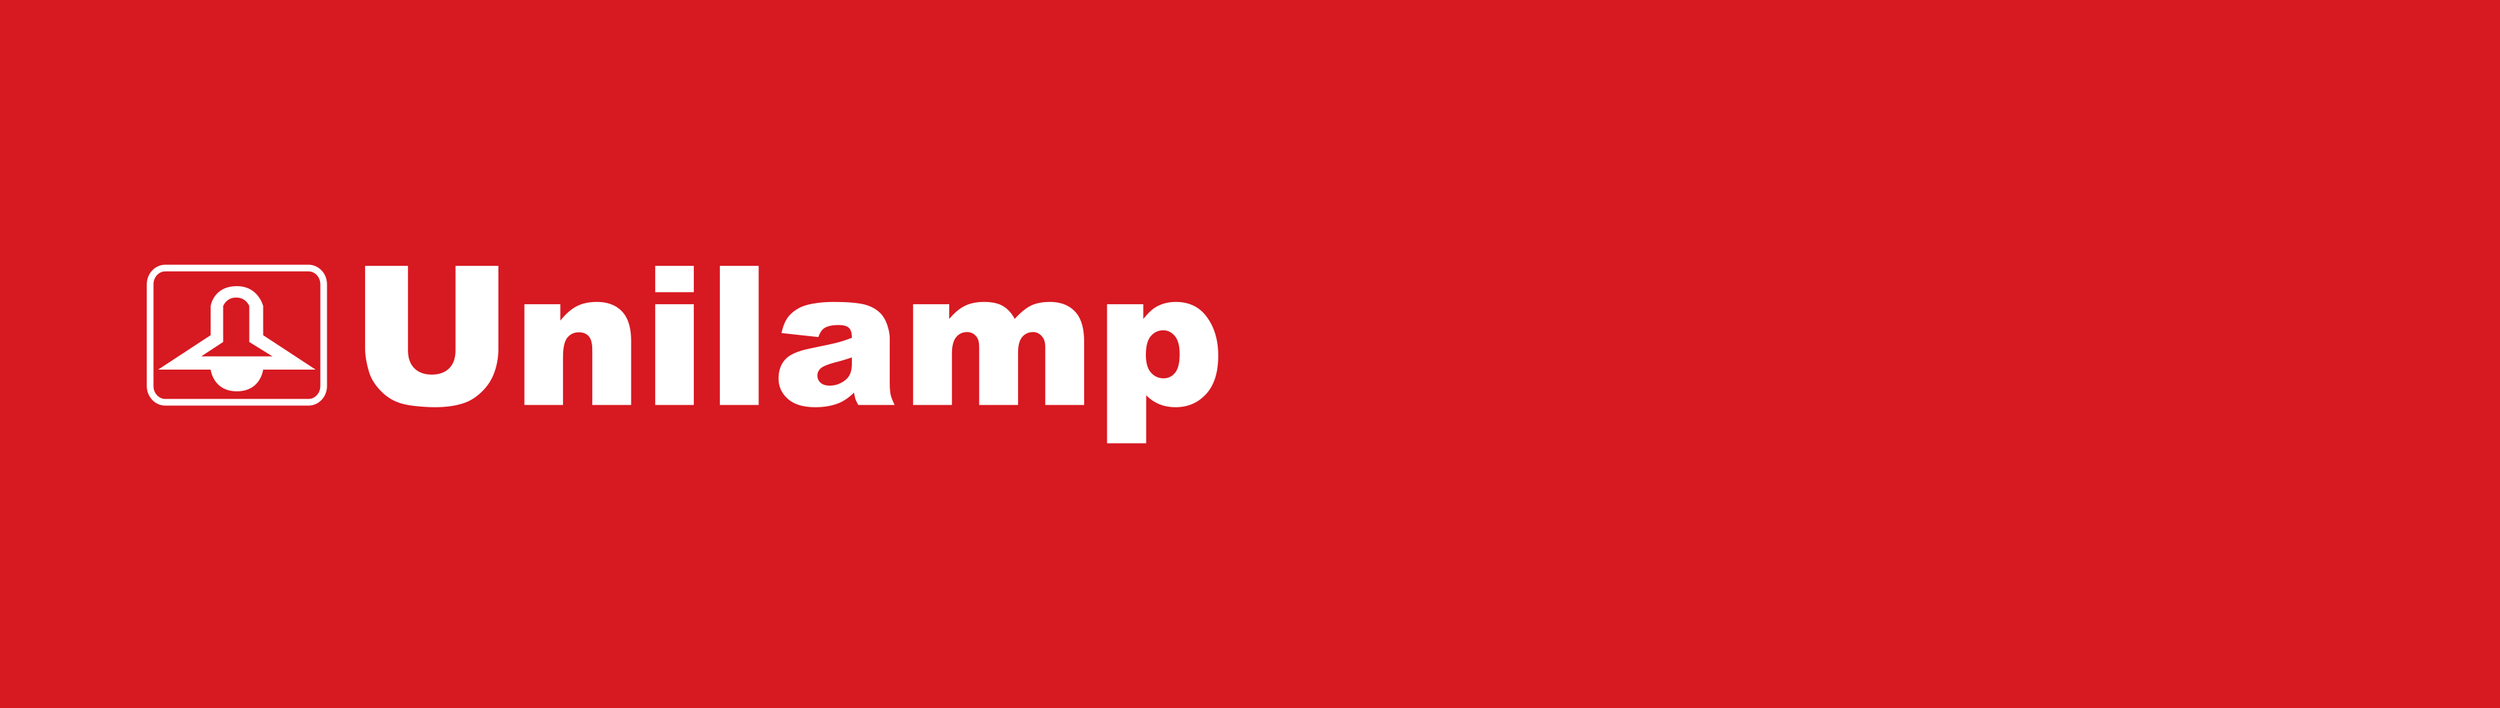 Unilamp_product_banner.png